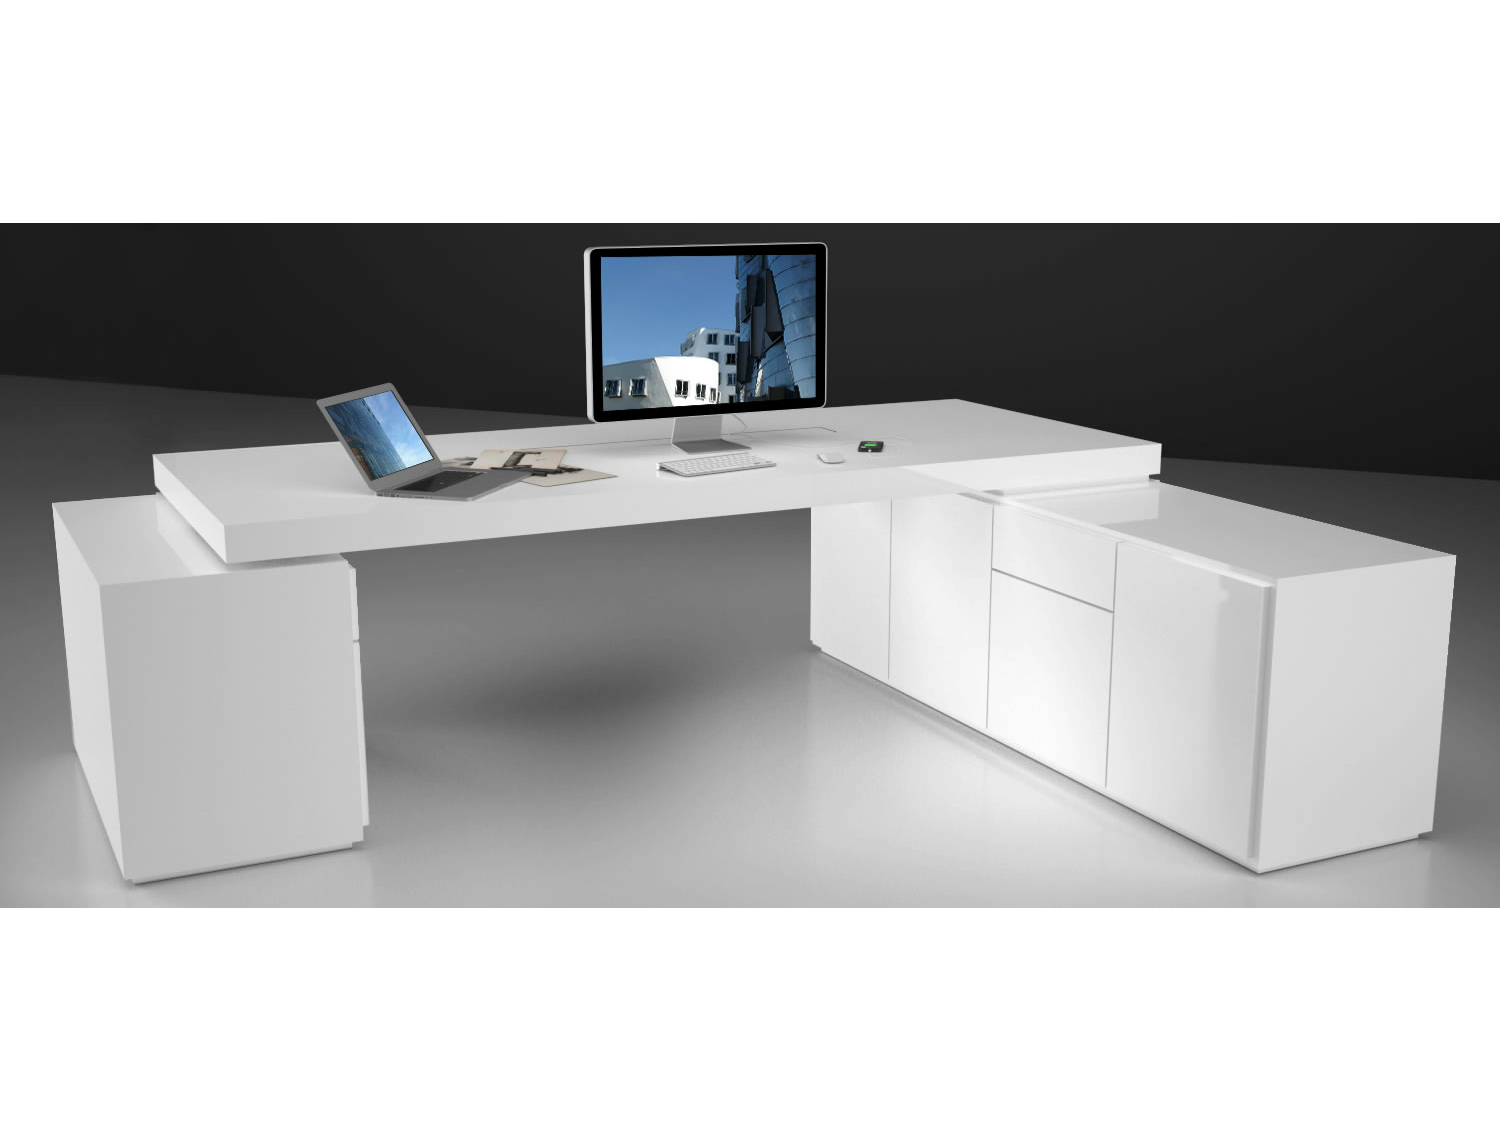 Bureau Design Blanc Laqu Top Bureau Dangle Design Avec Caisson  # Bureau Angle Tv